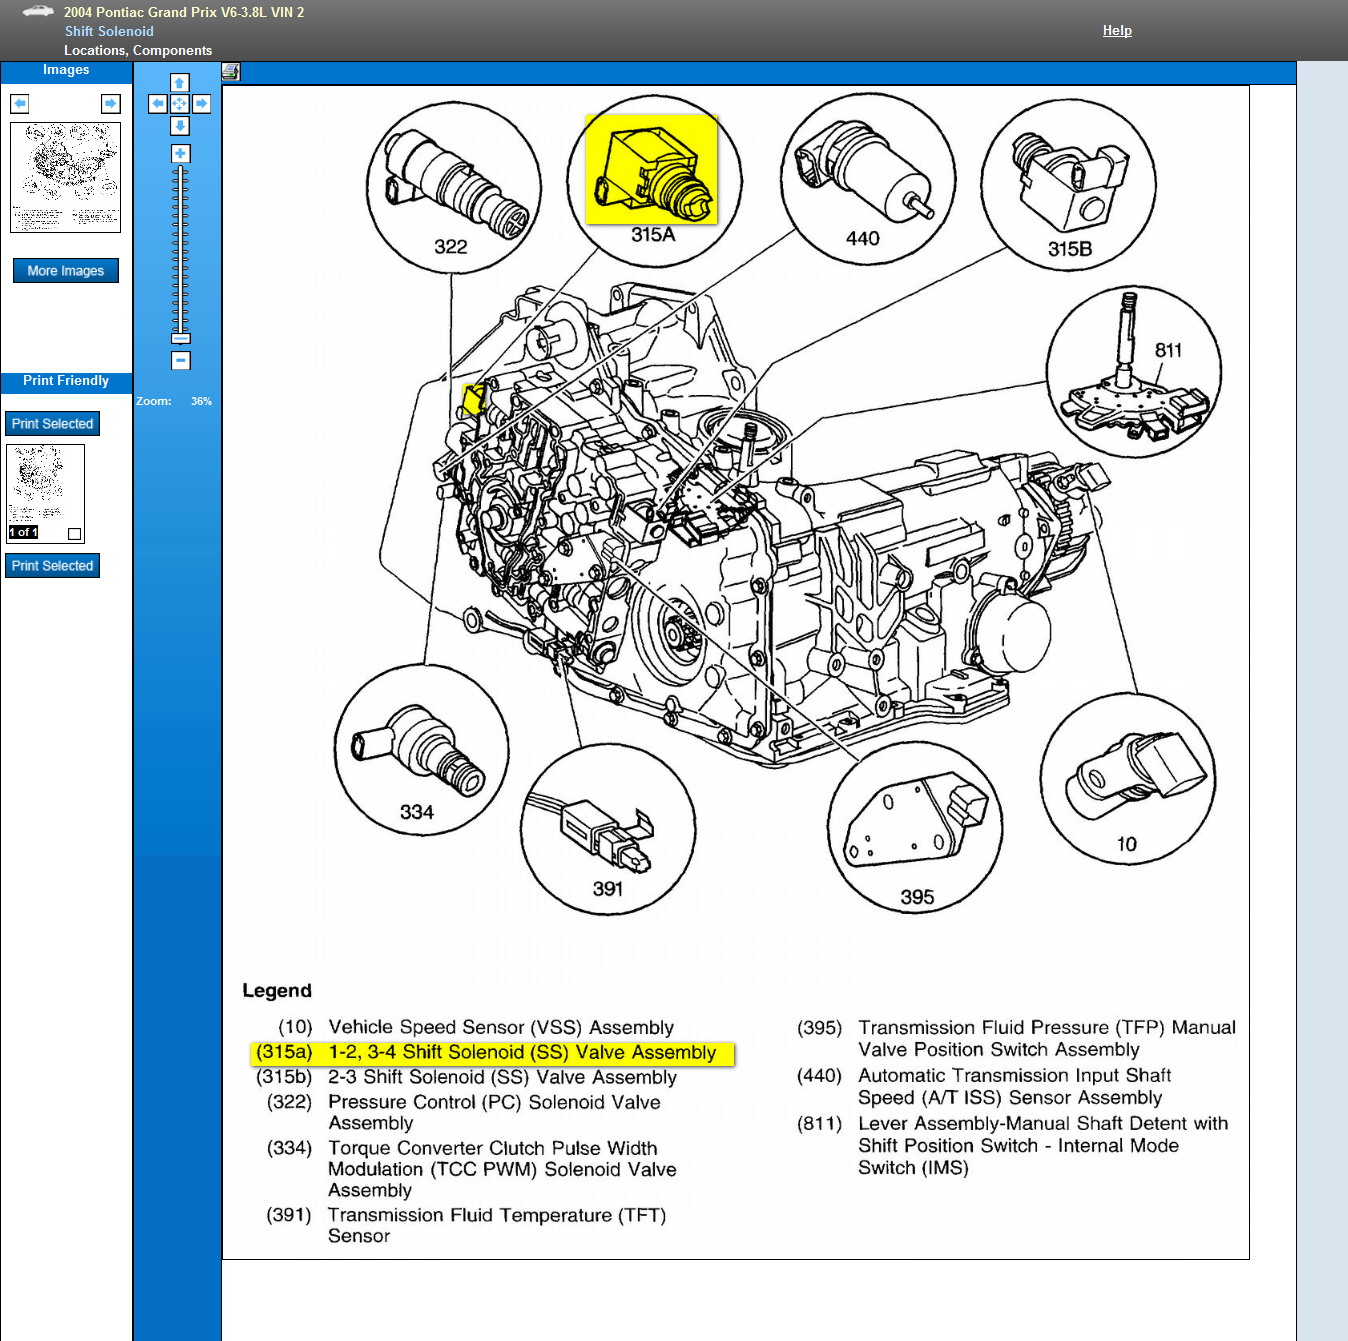 2004 Pontiac Grand Prix Transmission Diagram Wiring Diagrams Schematic V6 Engine Cooling System 3800 Series Iii With A P0751 Code Im Sure 1997 Jeep Cherokee